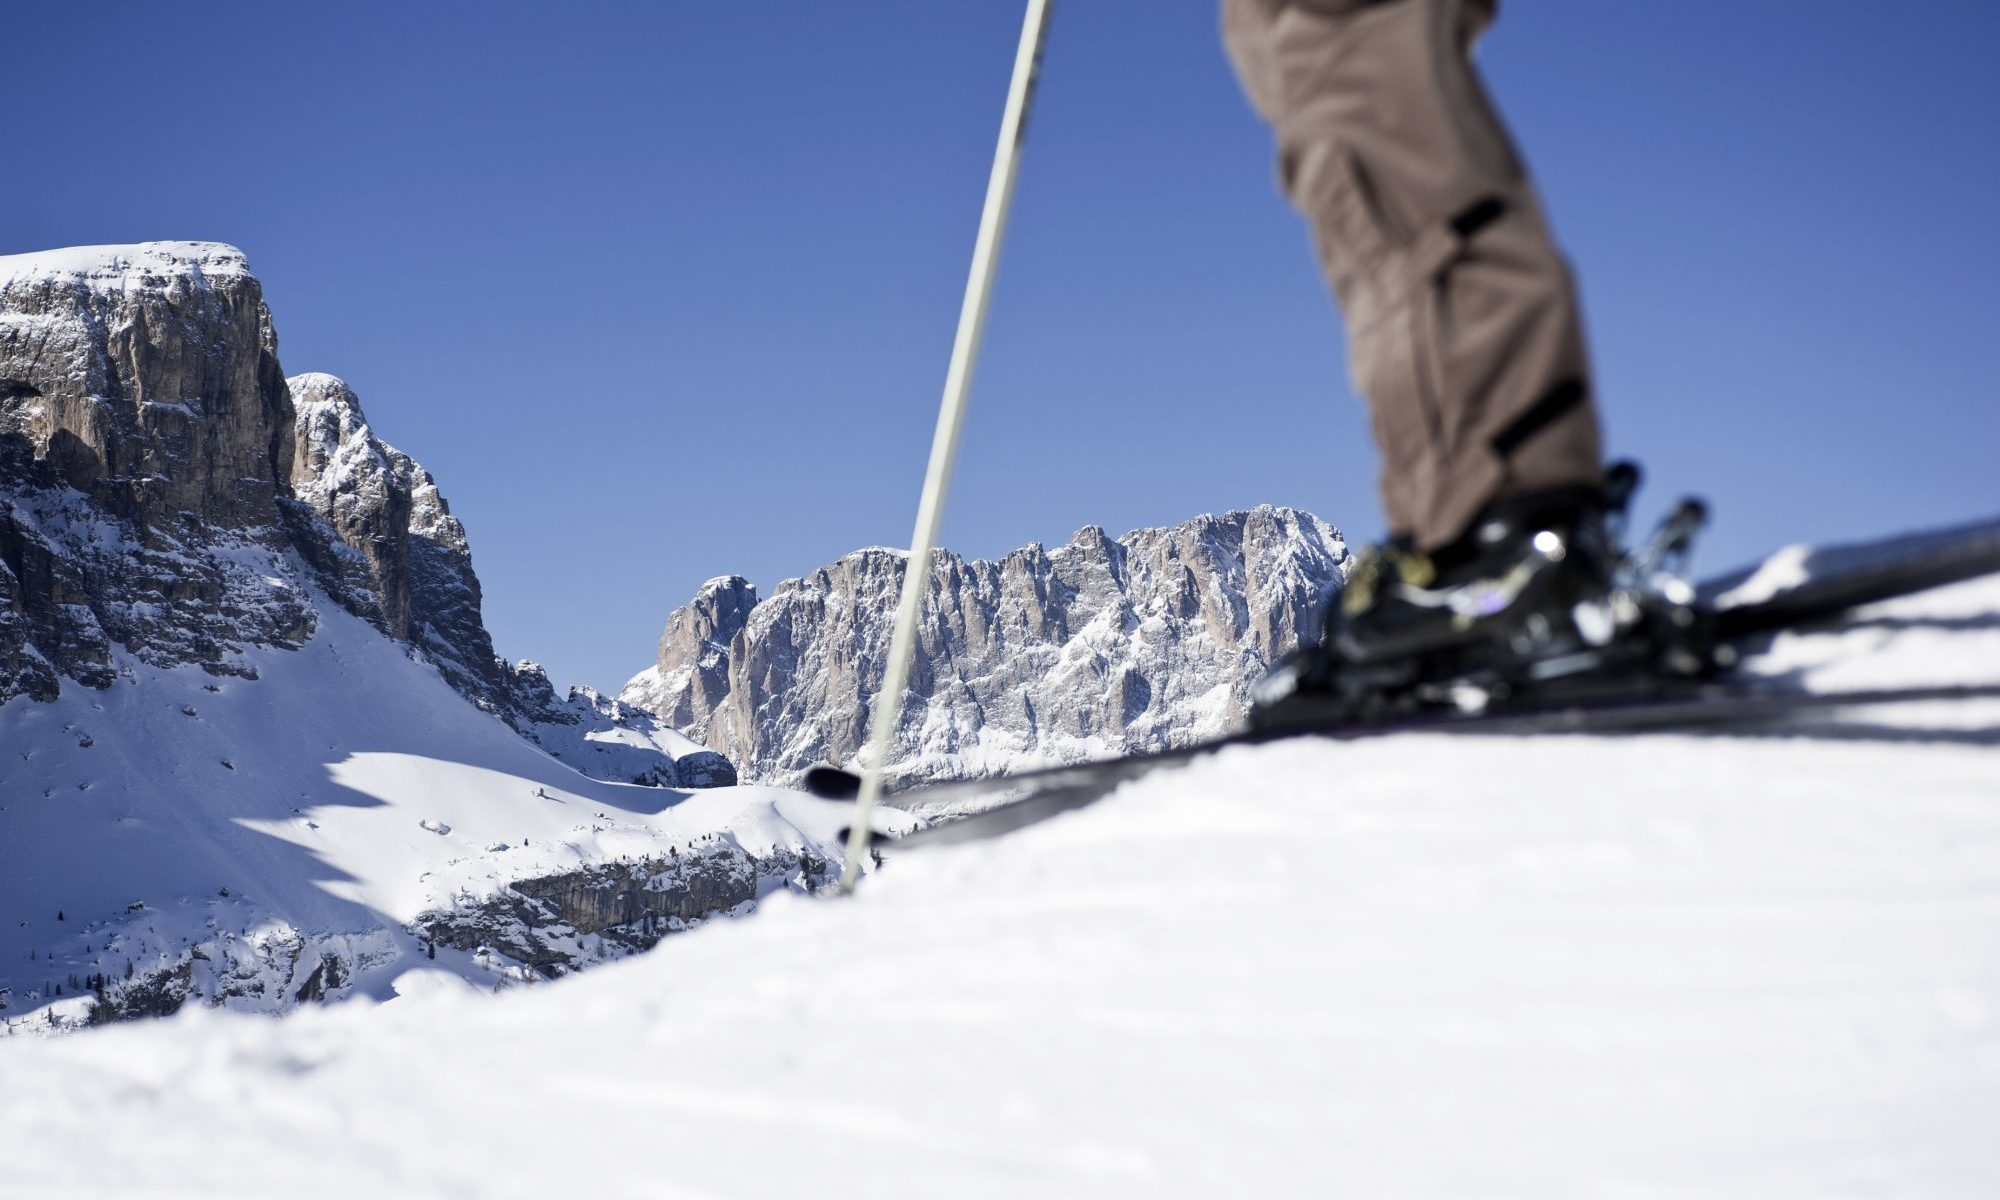 These unique Dolomite vistas encompass the extensive Alta Badia ski area, with magnificent views of the Sasso Lungo Peak and the Sella Mountain Range. Season Opening's at the different ski resorts of Sudtirol and Christmas Markets. Photo: IDM Sudtirol.